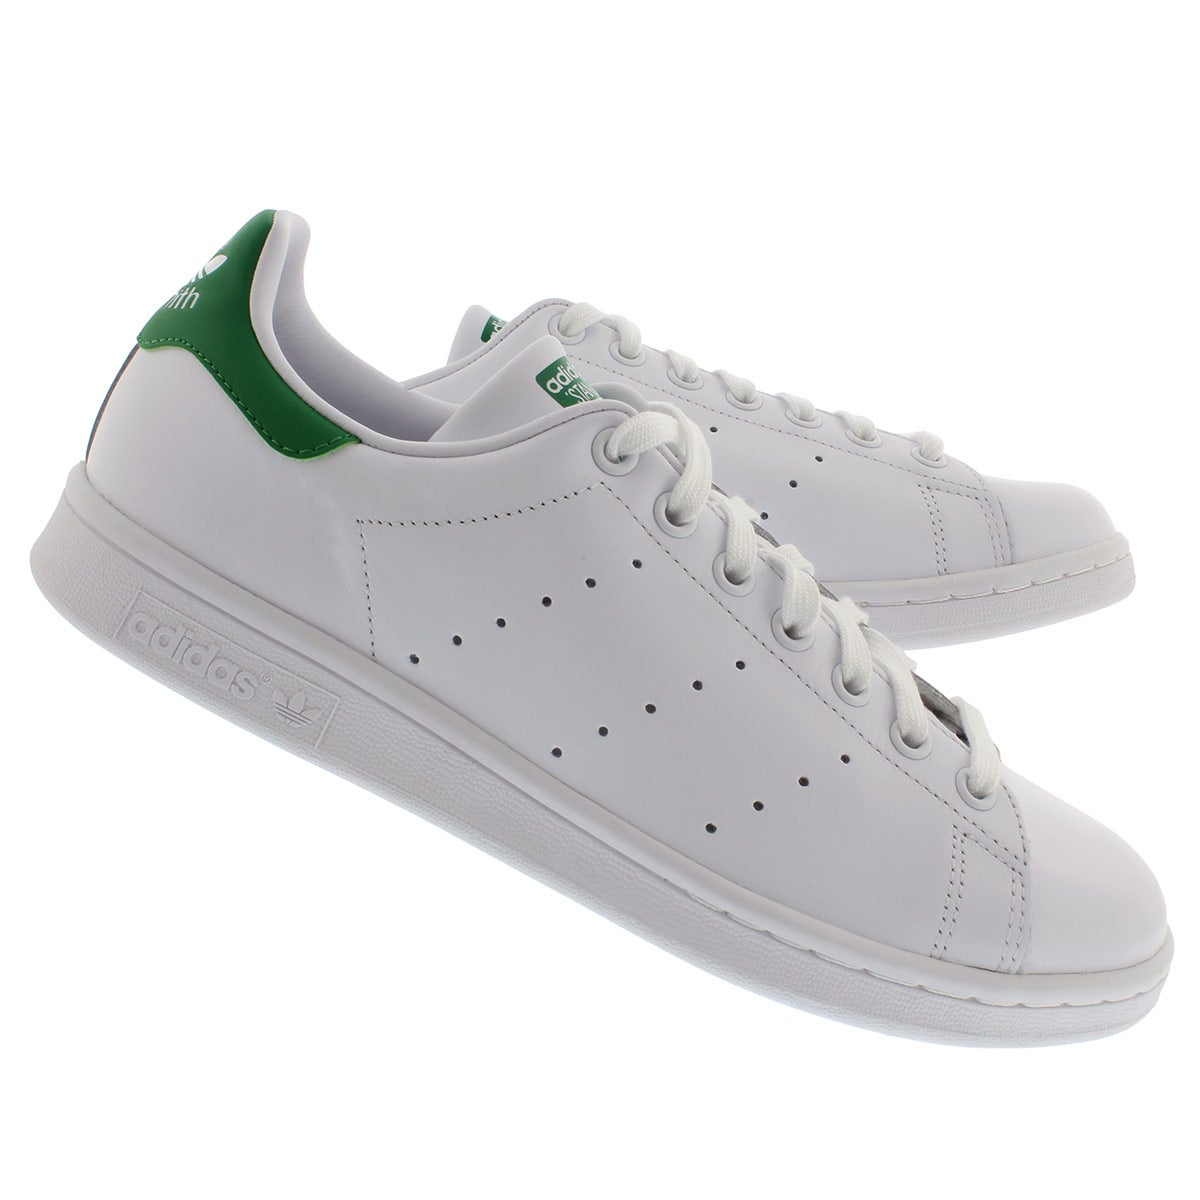 Mns Stan Smith white/green sneaker